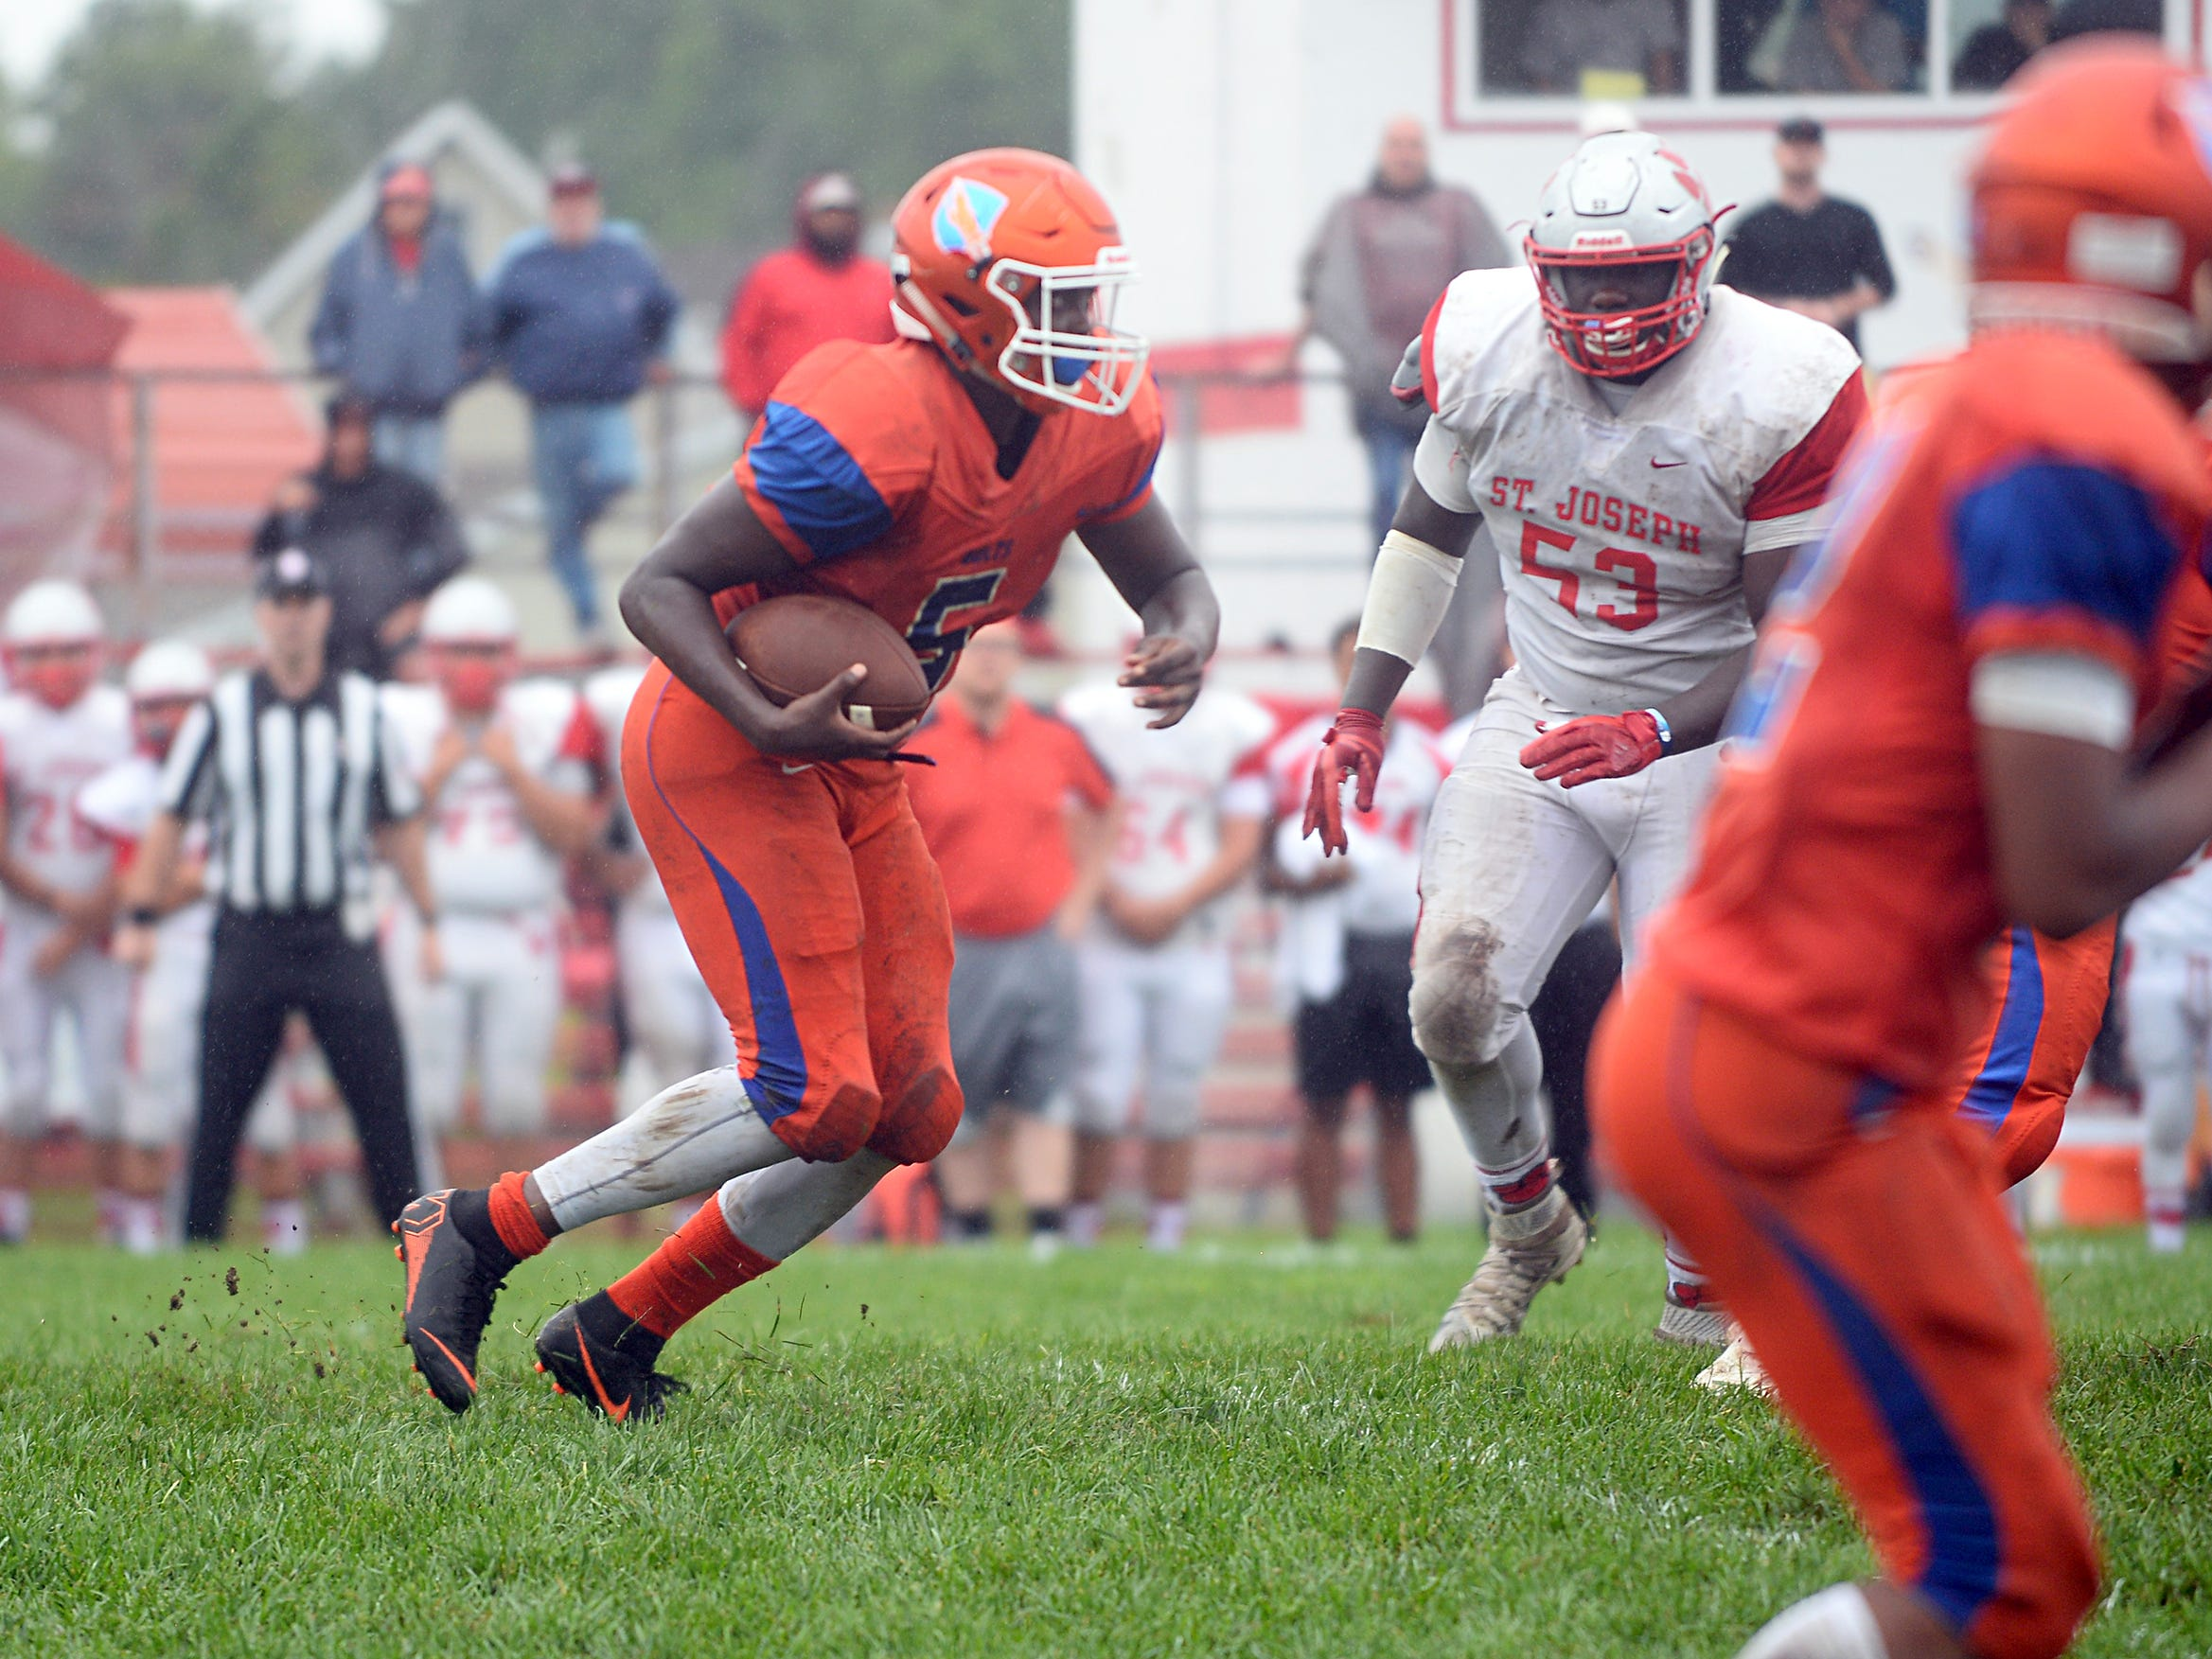 Millville RB, Tex Thompson (5) runs the ball for a gain against St. Joseph. The visiting Thunderbolts lost the outing to the Wildcats in Hammonton on Saturday, September 8.